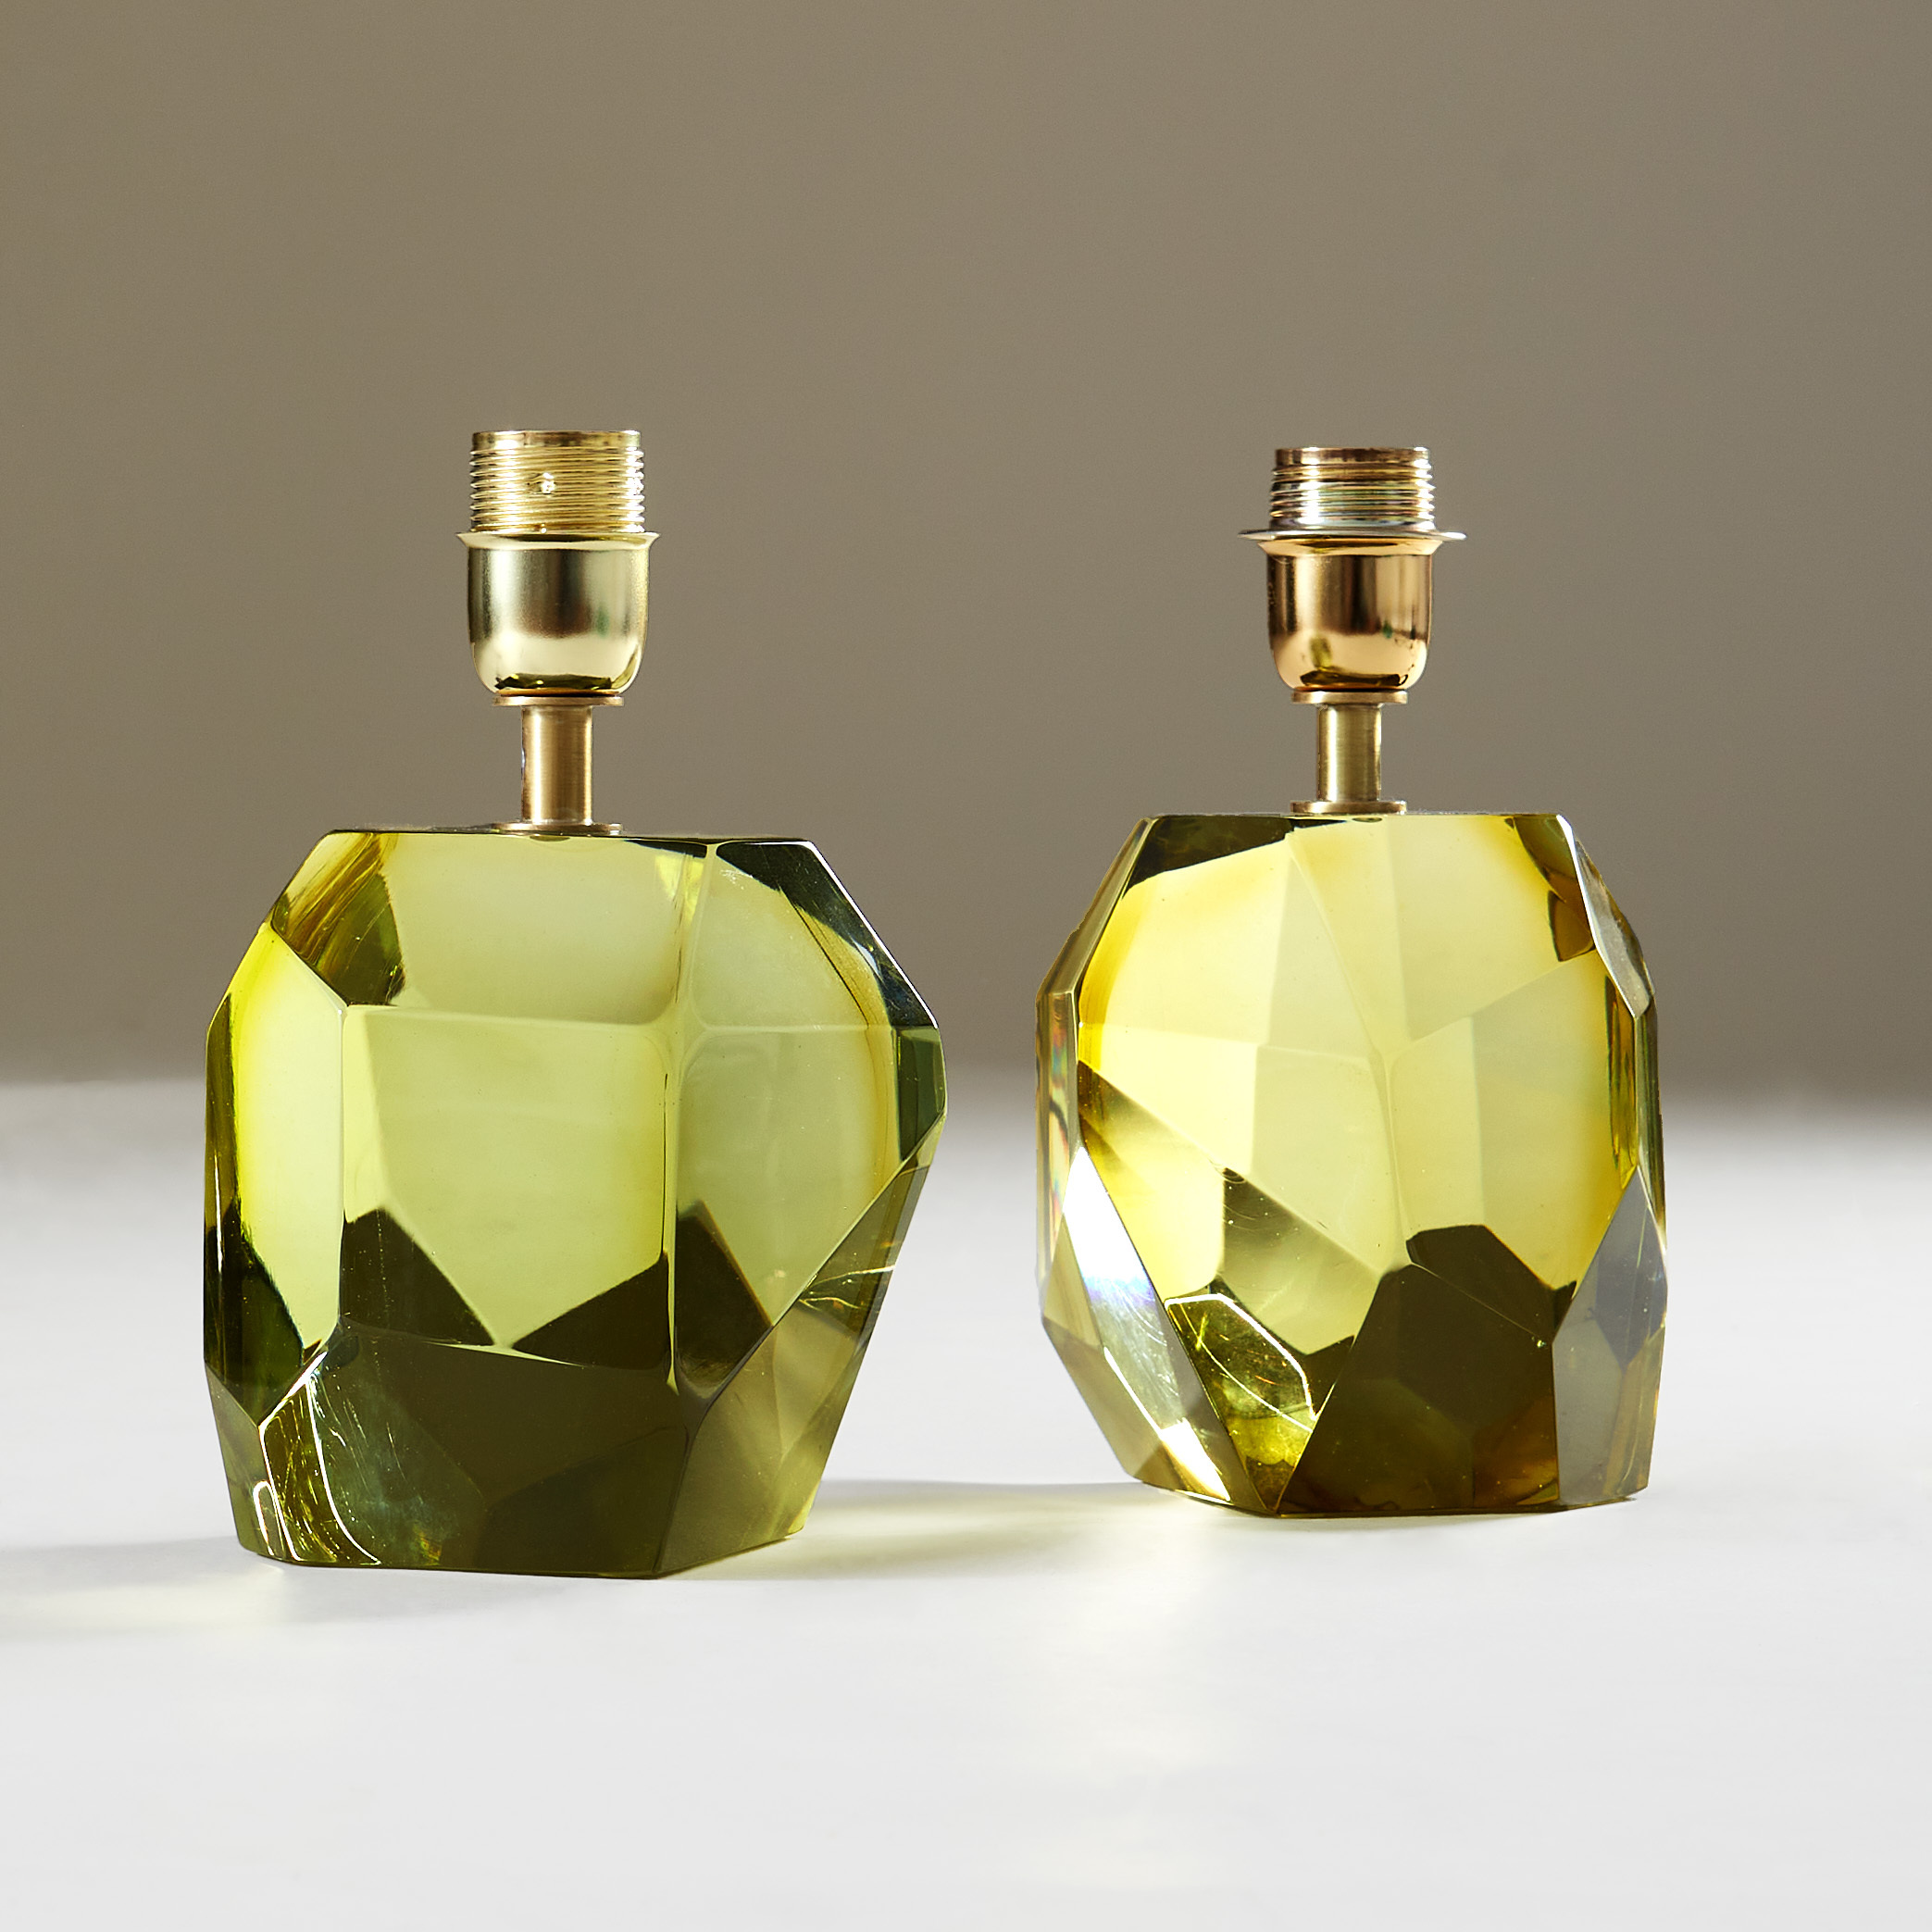 The image for Citrine Yellow Rock Lamp 20210225 Valerie Wade 2 238 V2